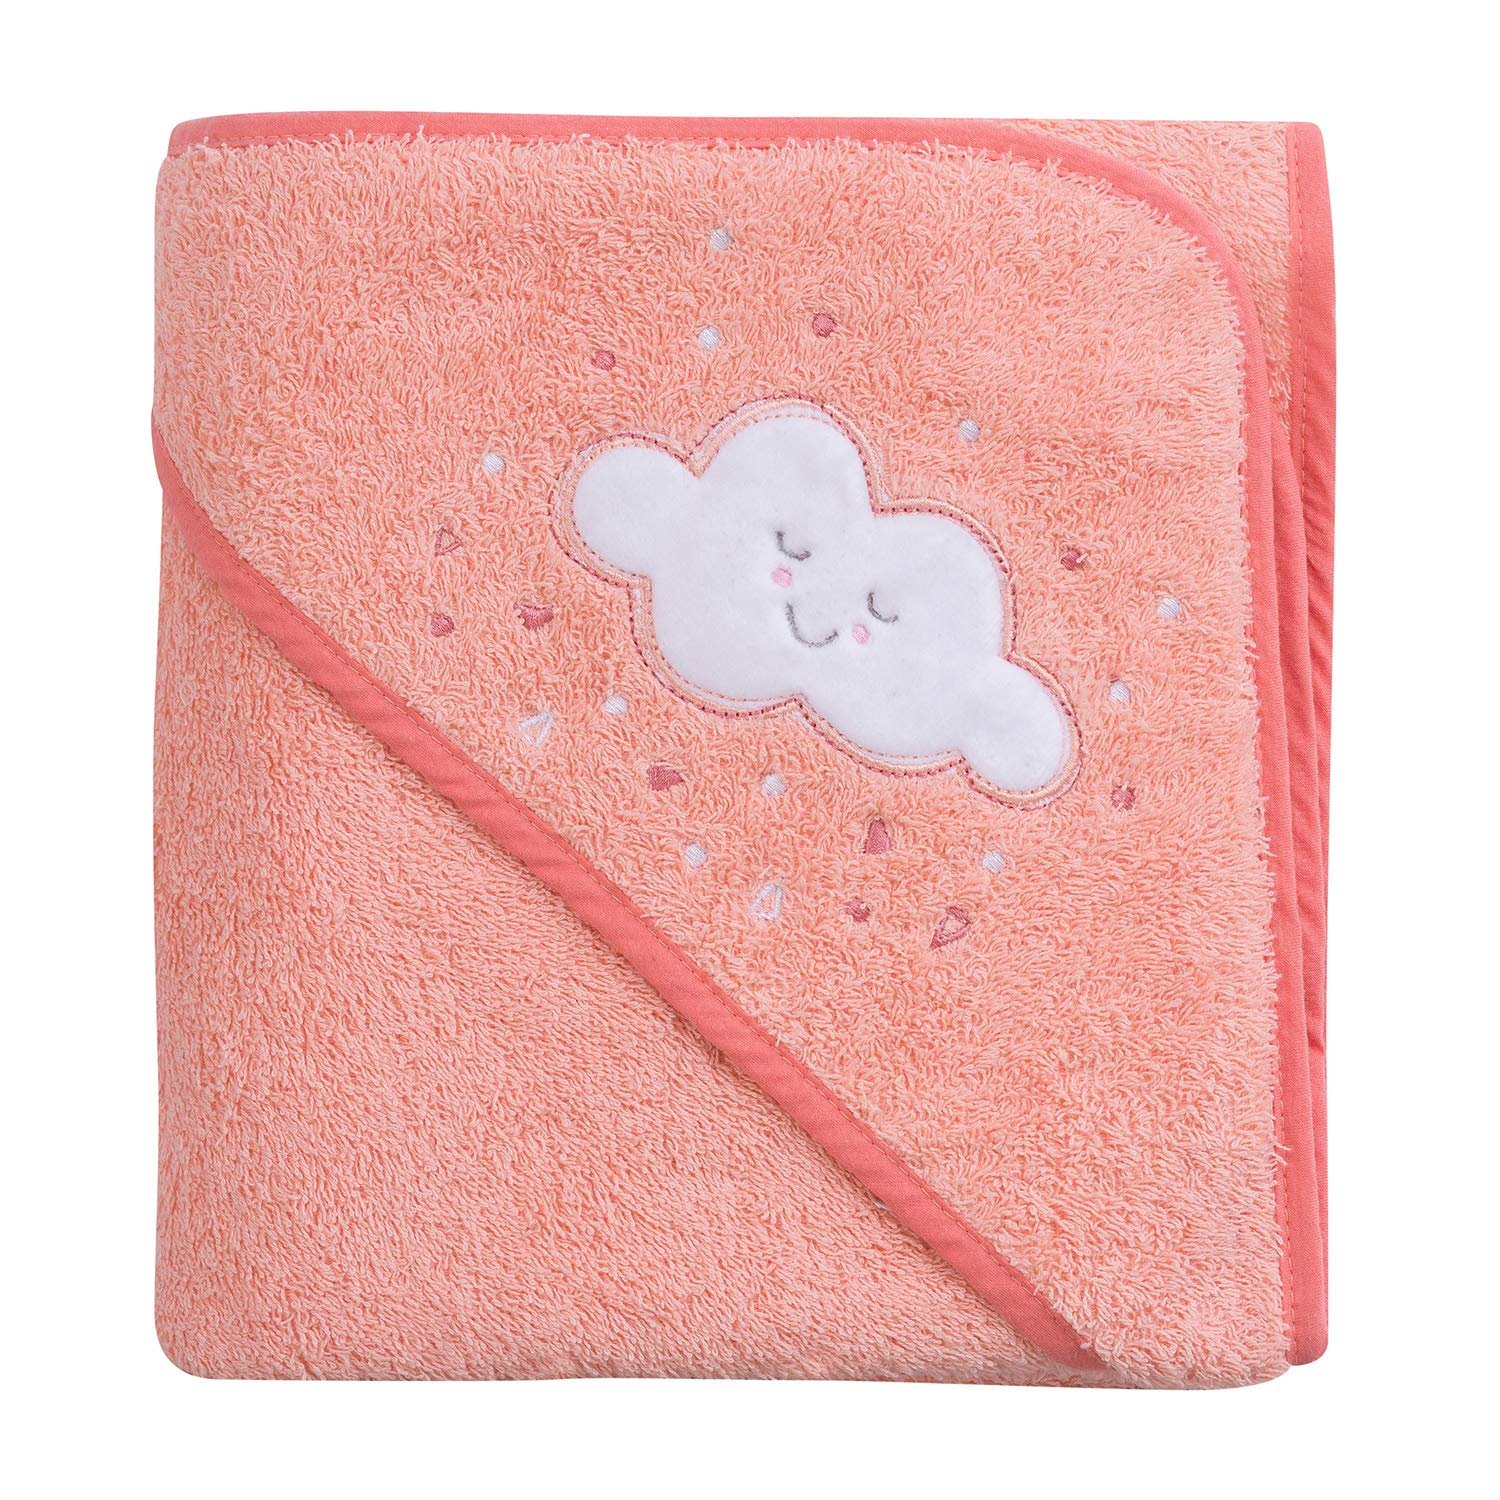 ClevaMama Apron Hooded Baby Towel - Bath Towel With Hood, Soft Cotton Bath Wrap, Coral